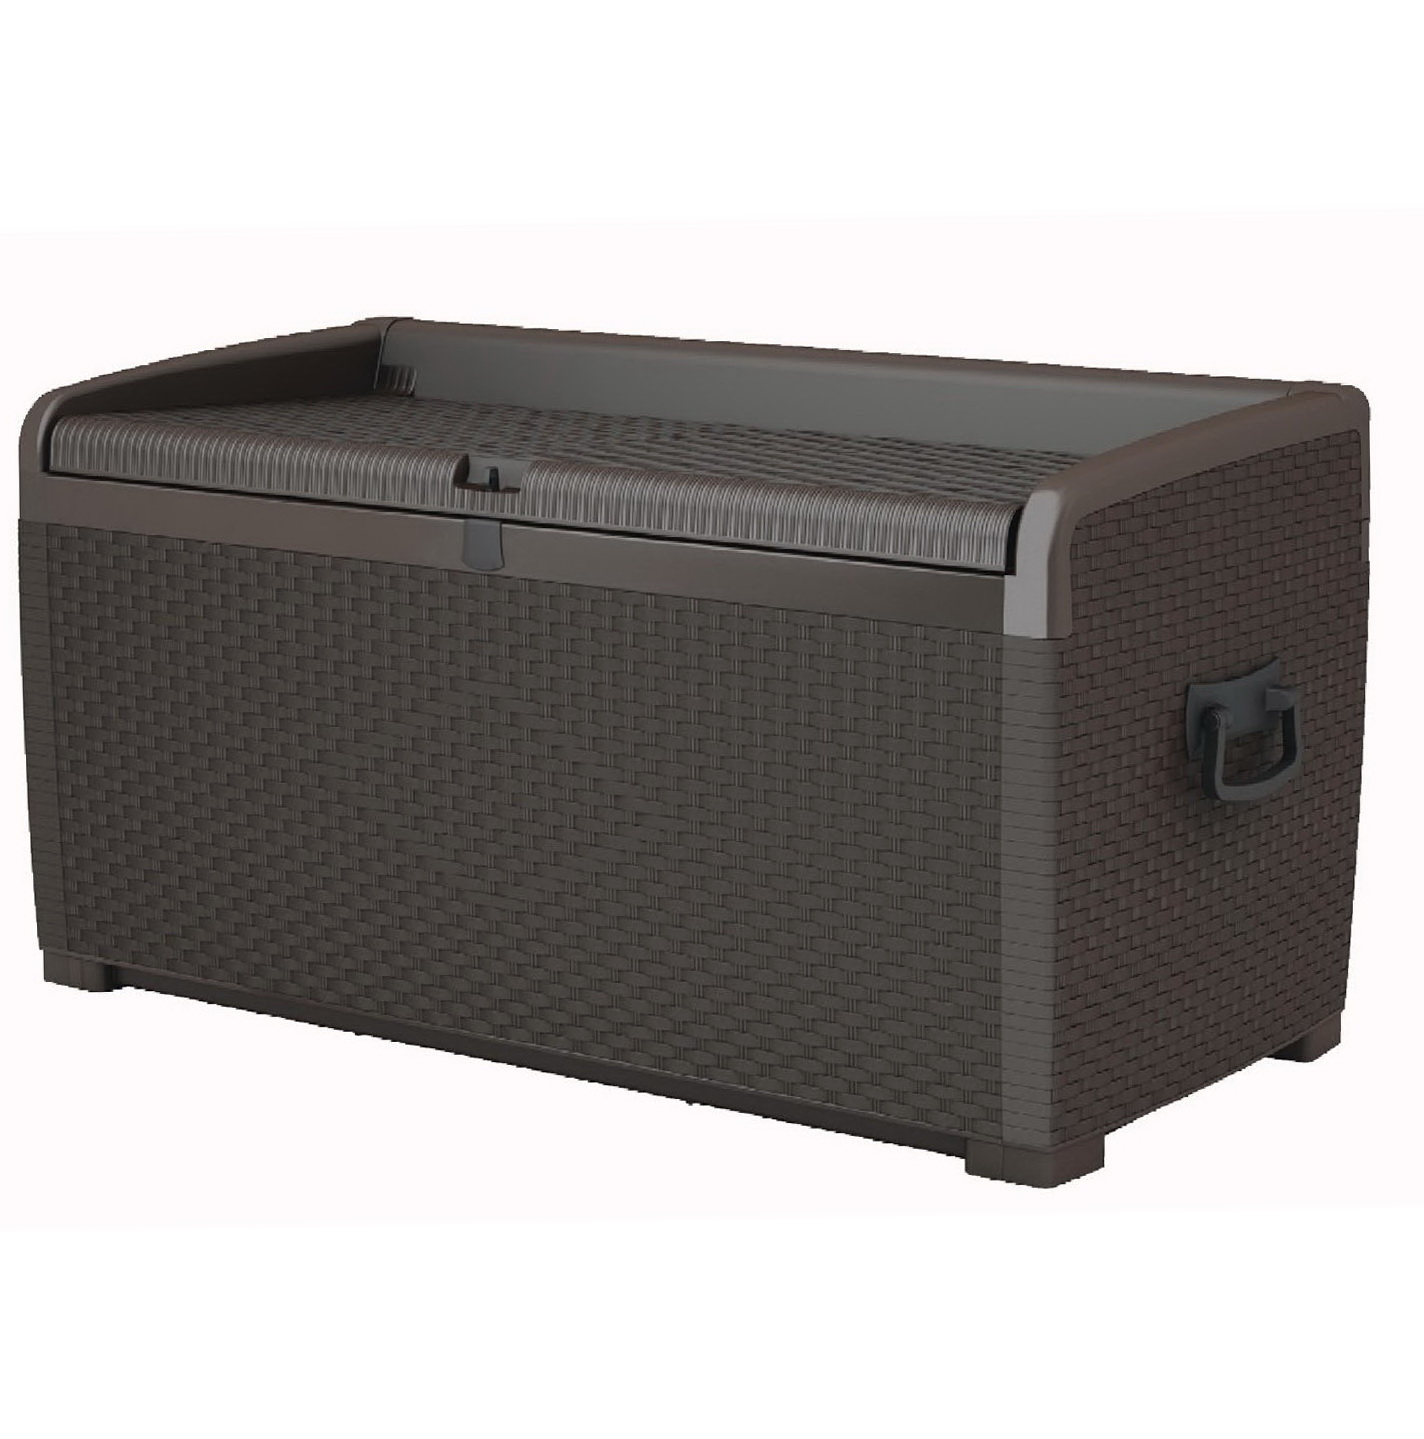 Outdoor Cushion Storage Boxes